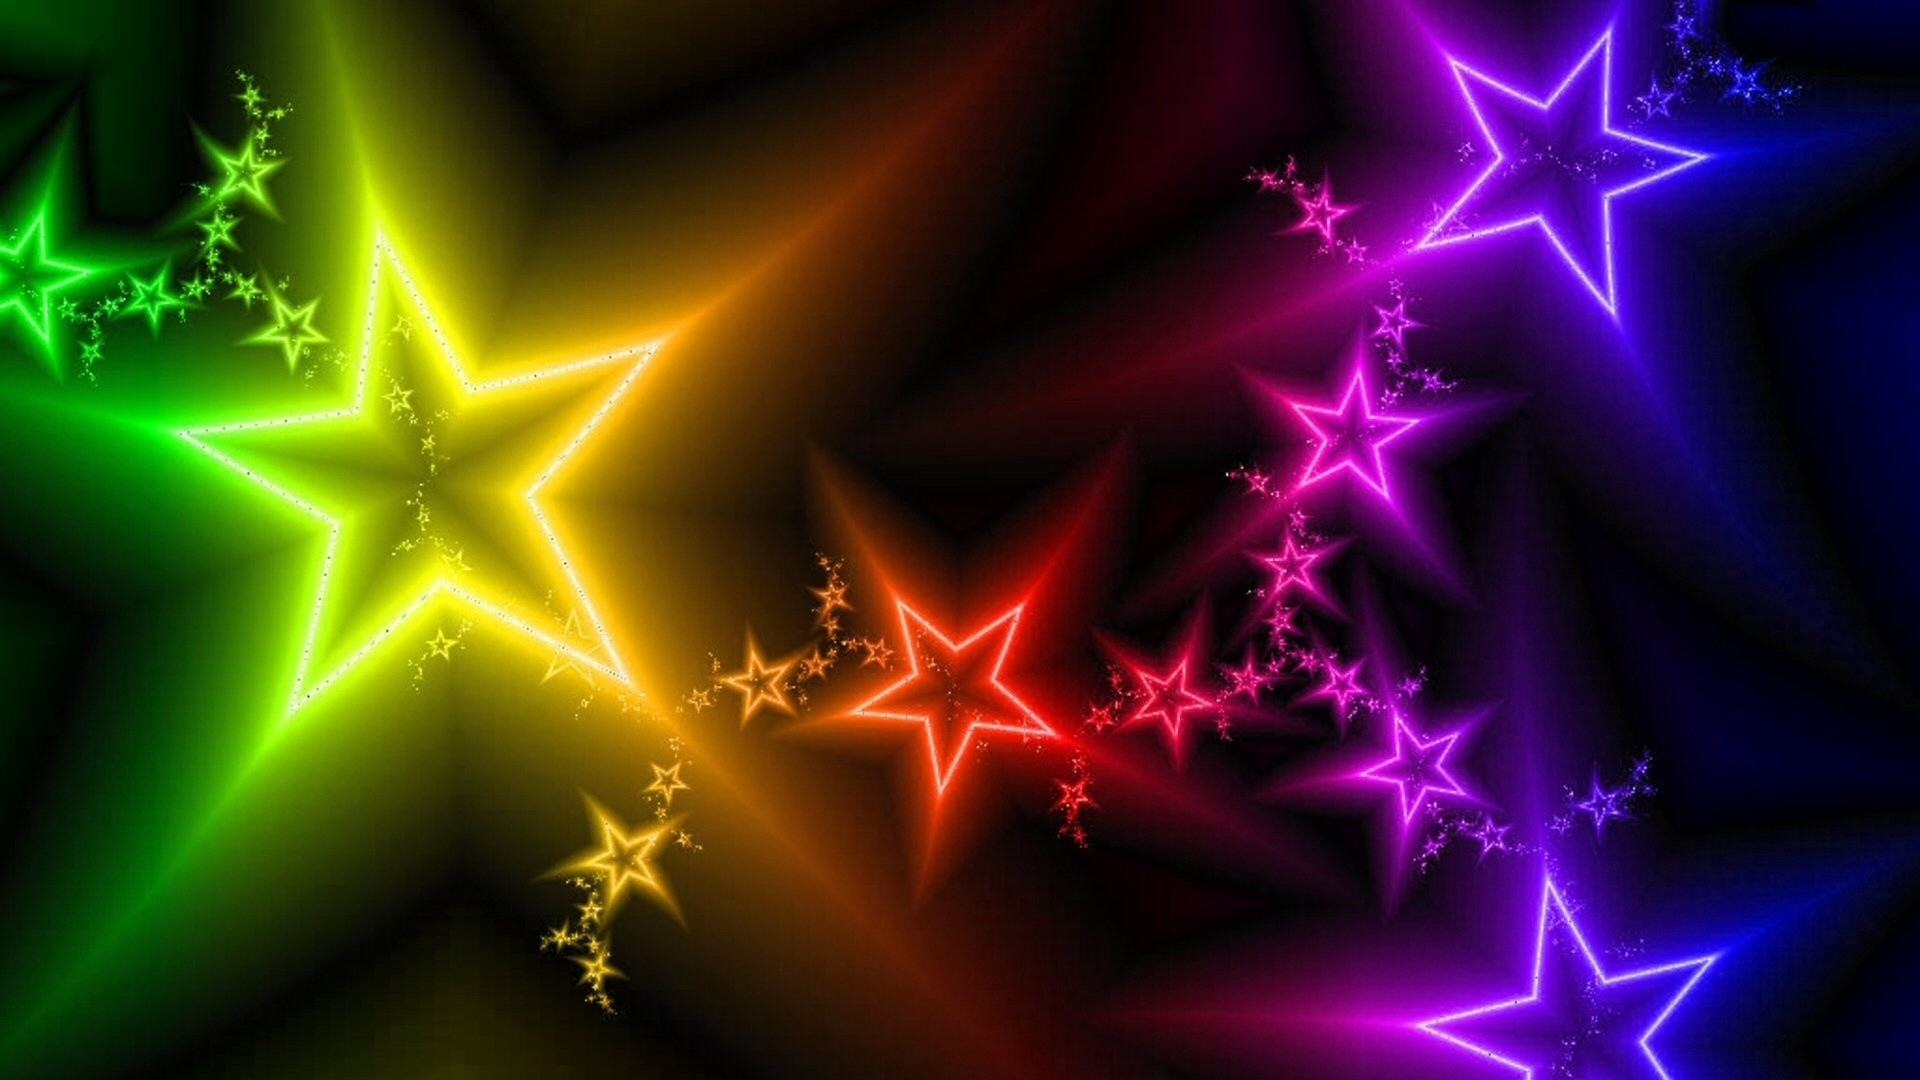 Unique Colorful Wallpaper Desktop